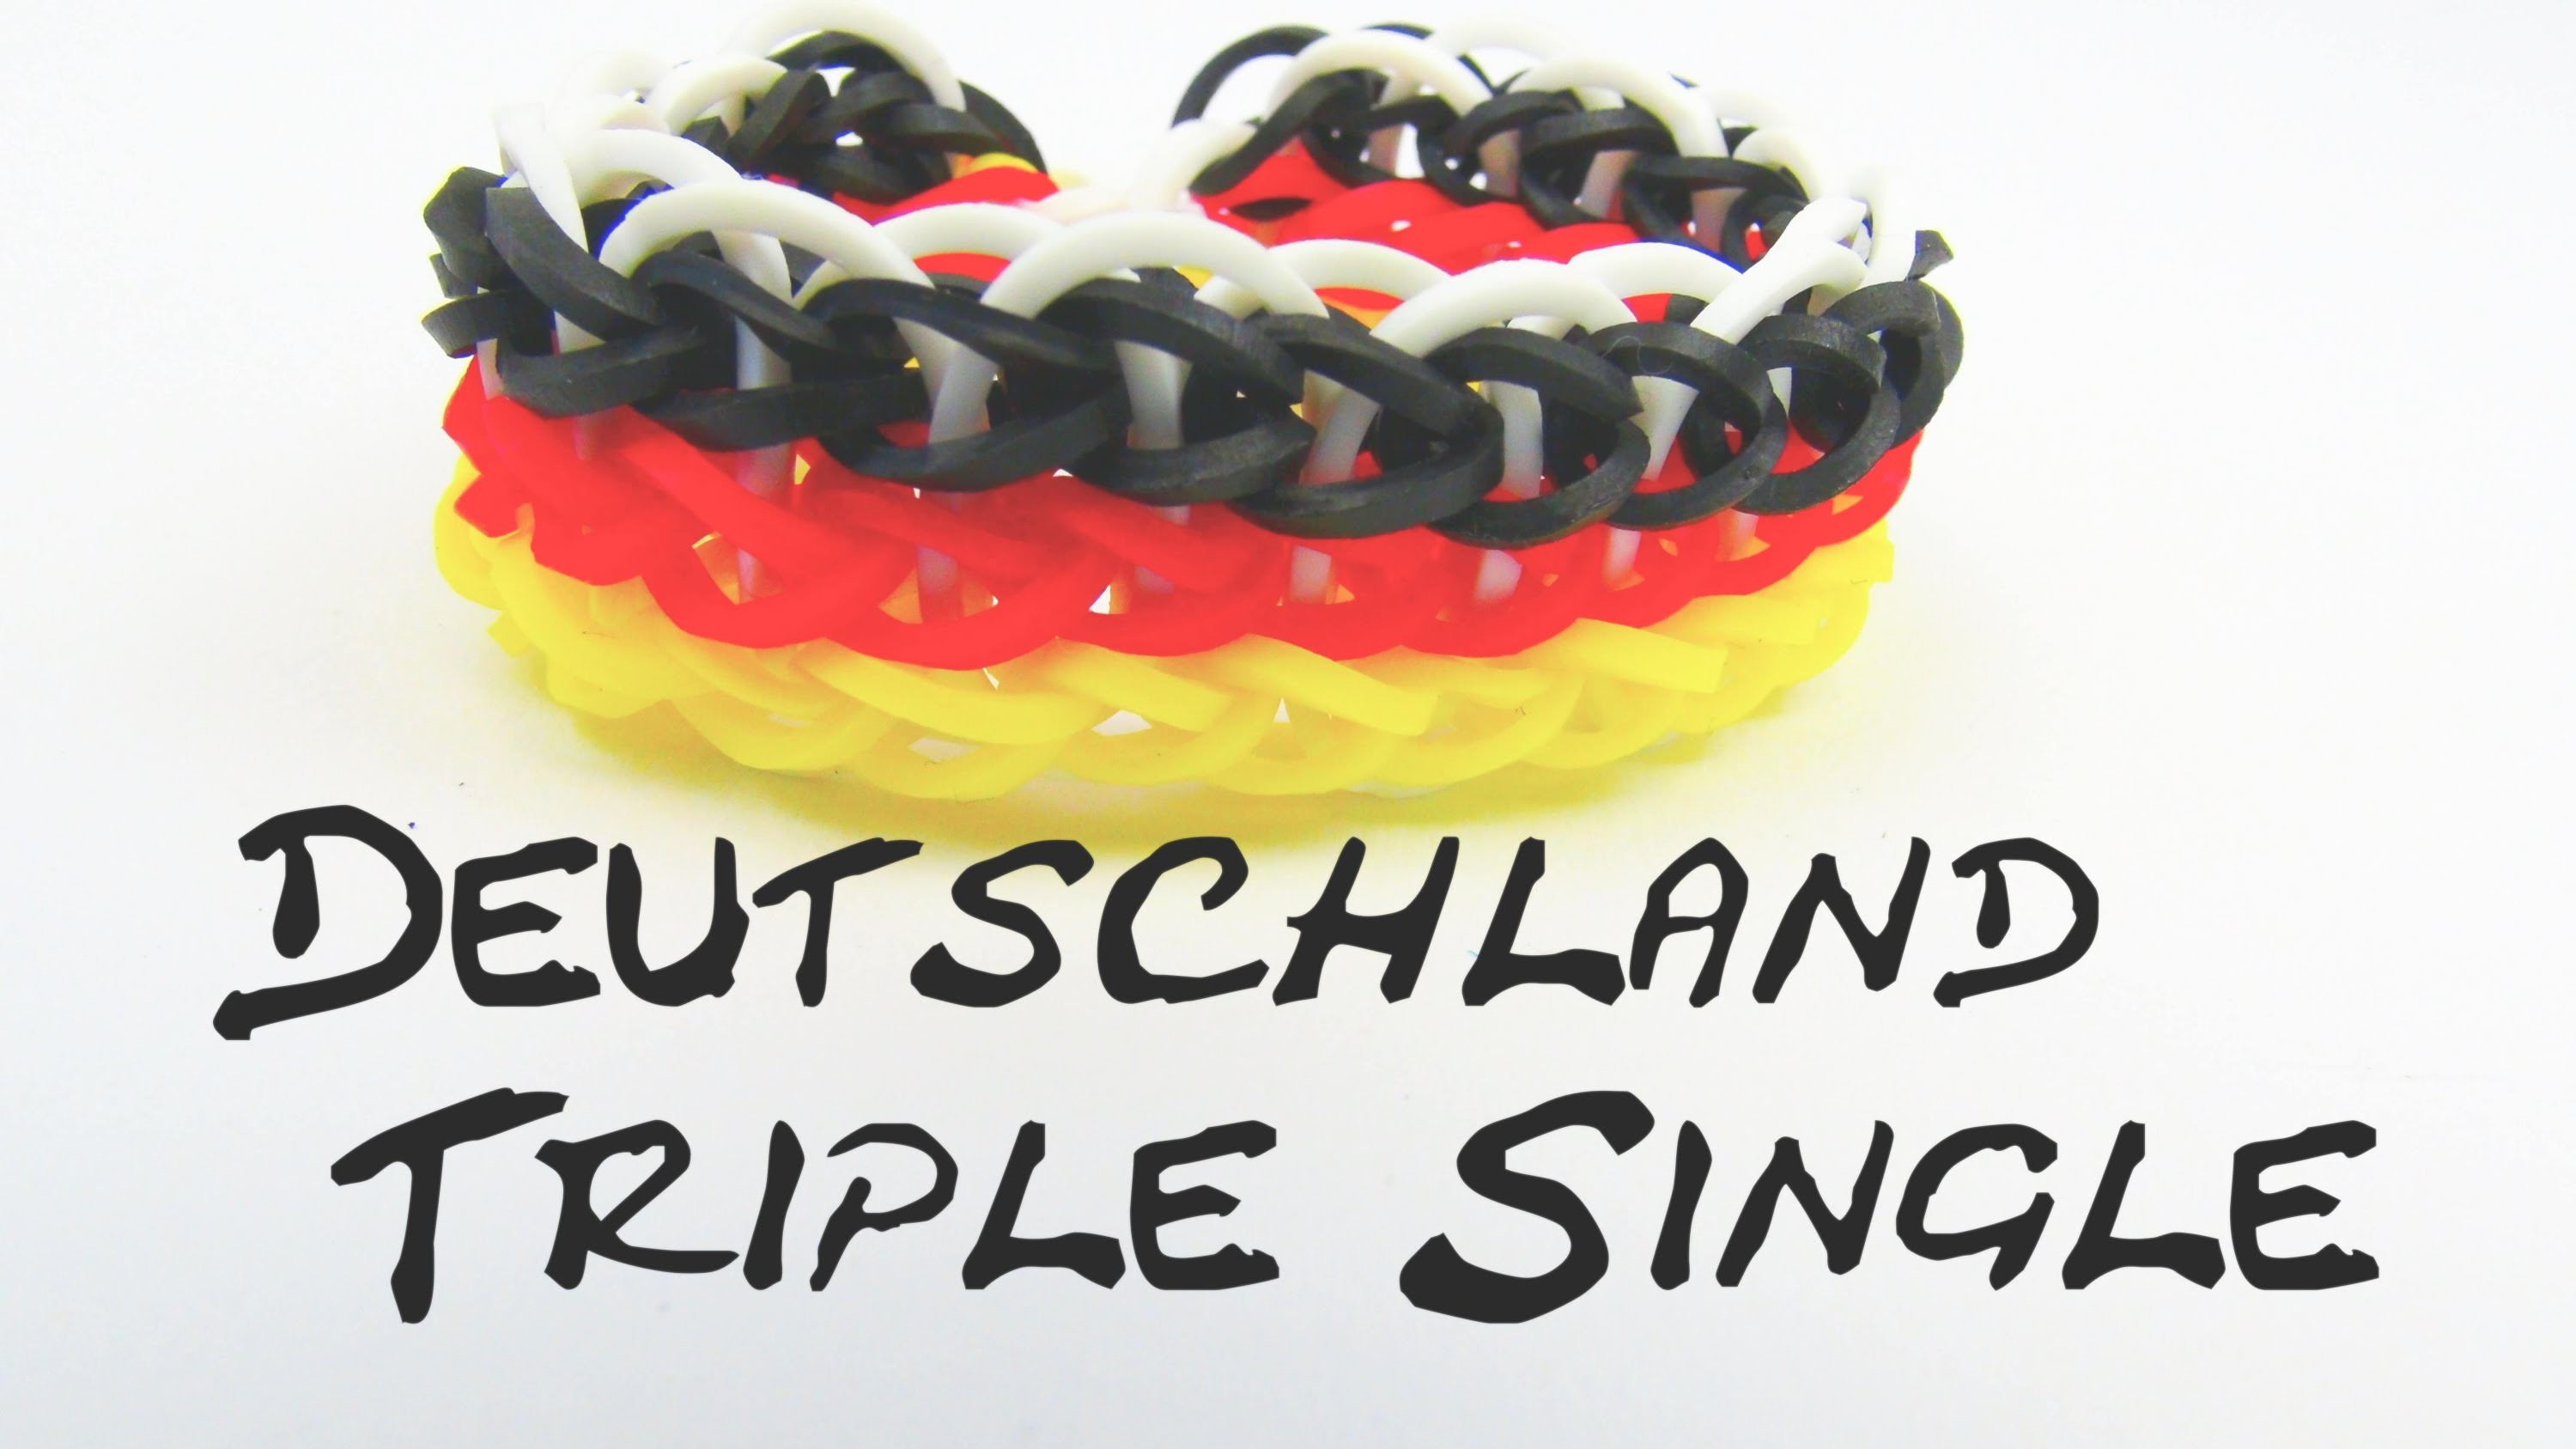 Loom Bands Triple Single Rainbow Loom Deutschland Farben Armband. Bracelet Tutorial | deutsch